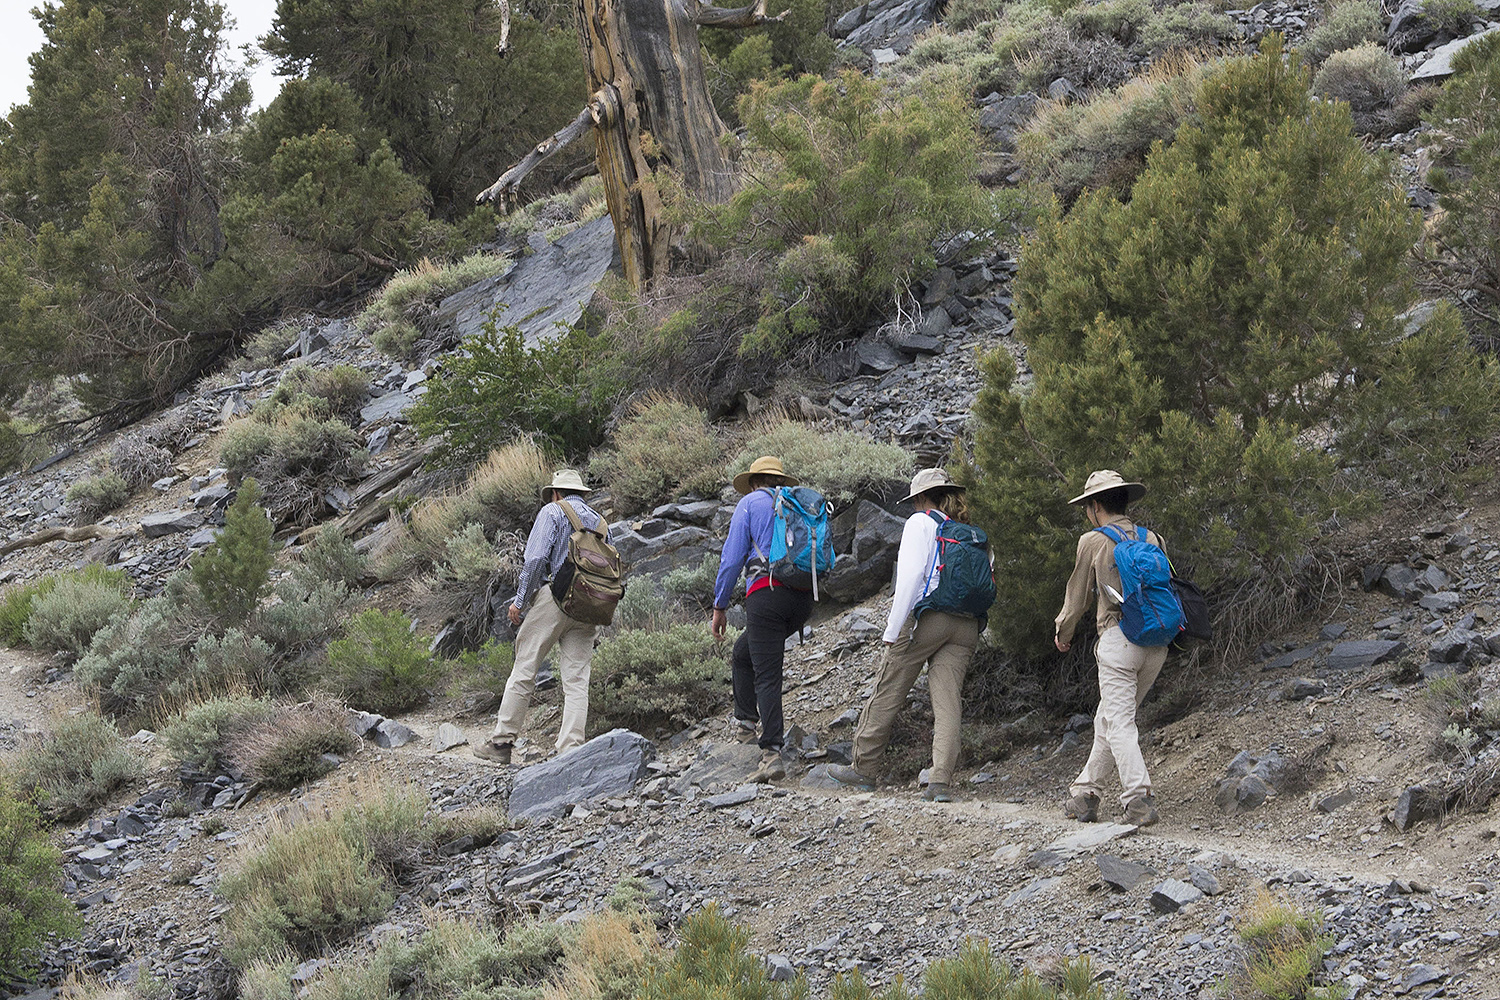 The research team hiked to 9,600 feet to sample rhizospheres of prickly pear and sagebrush.